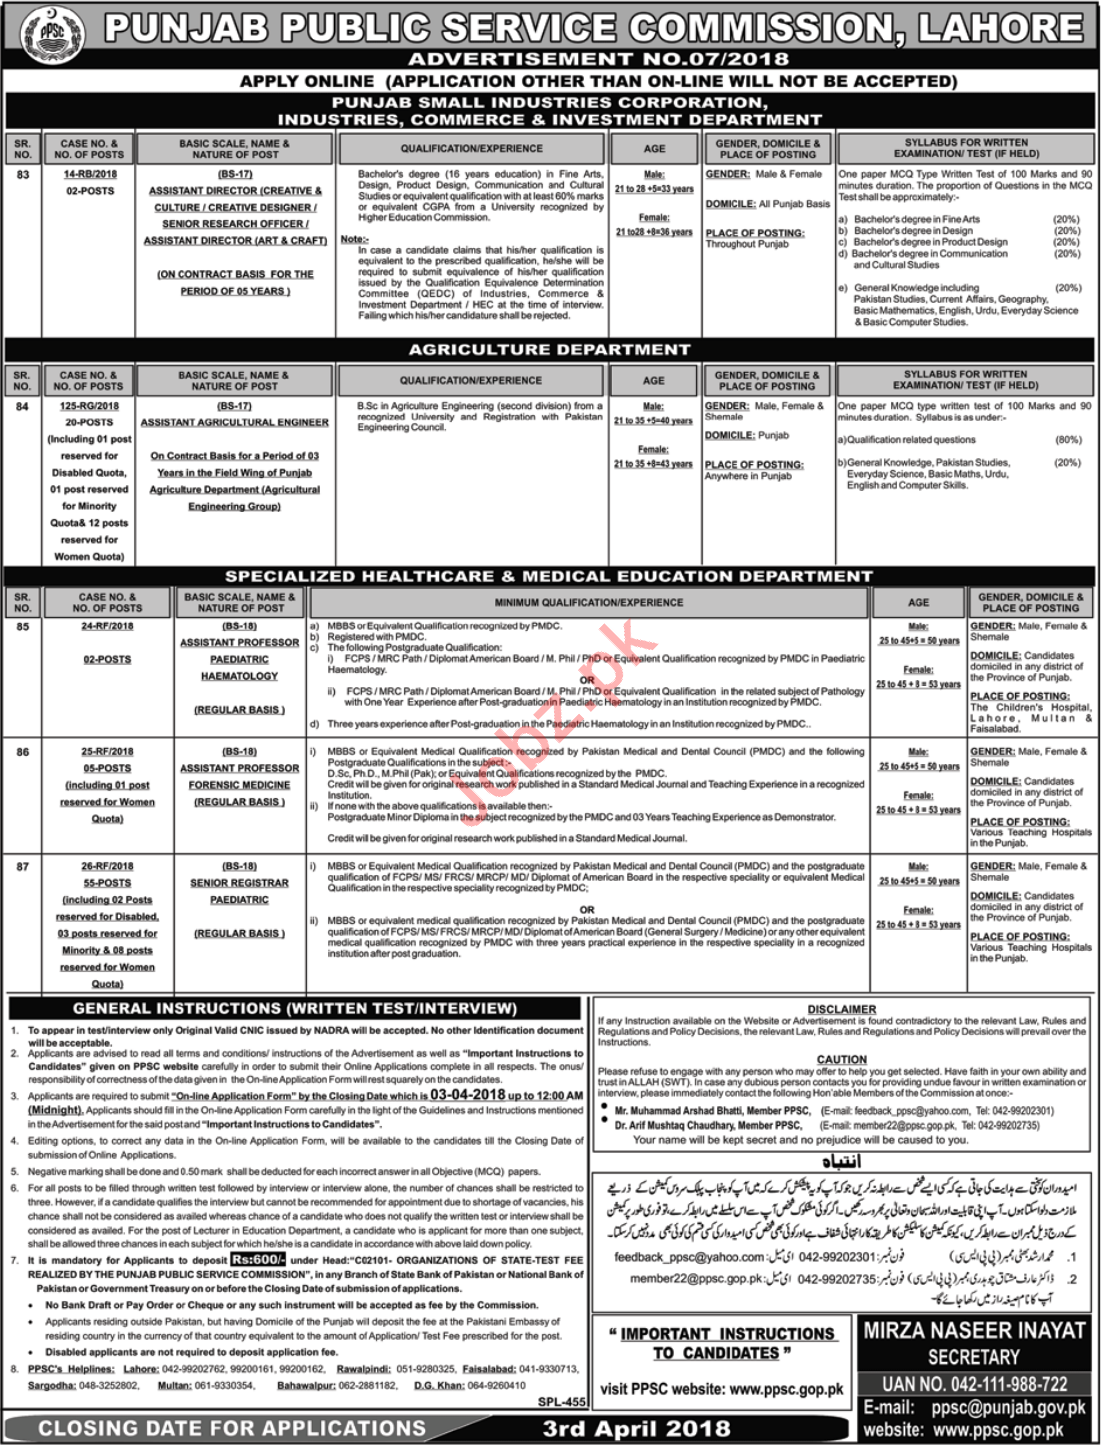 PPSC Jobs March 2018 Advertiment 7/2018